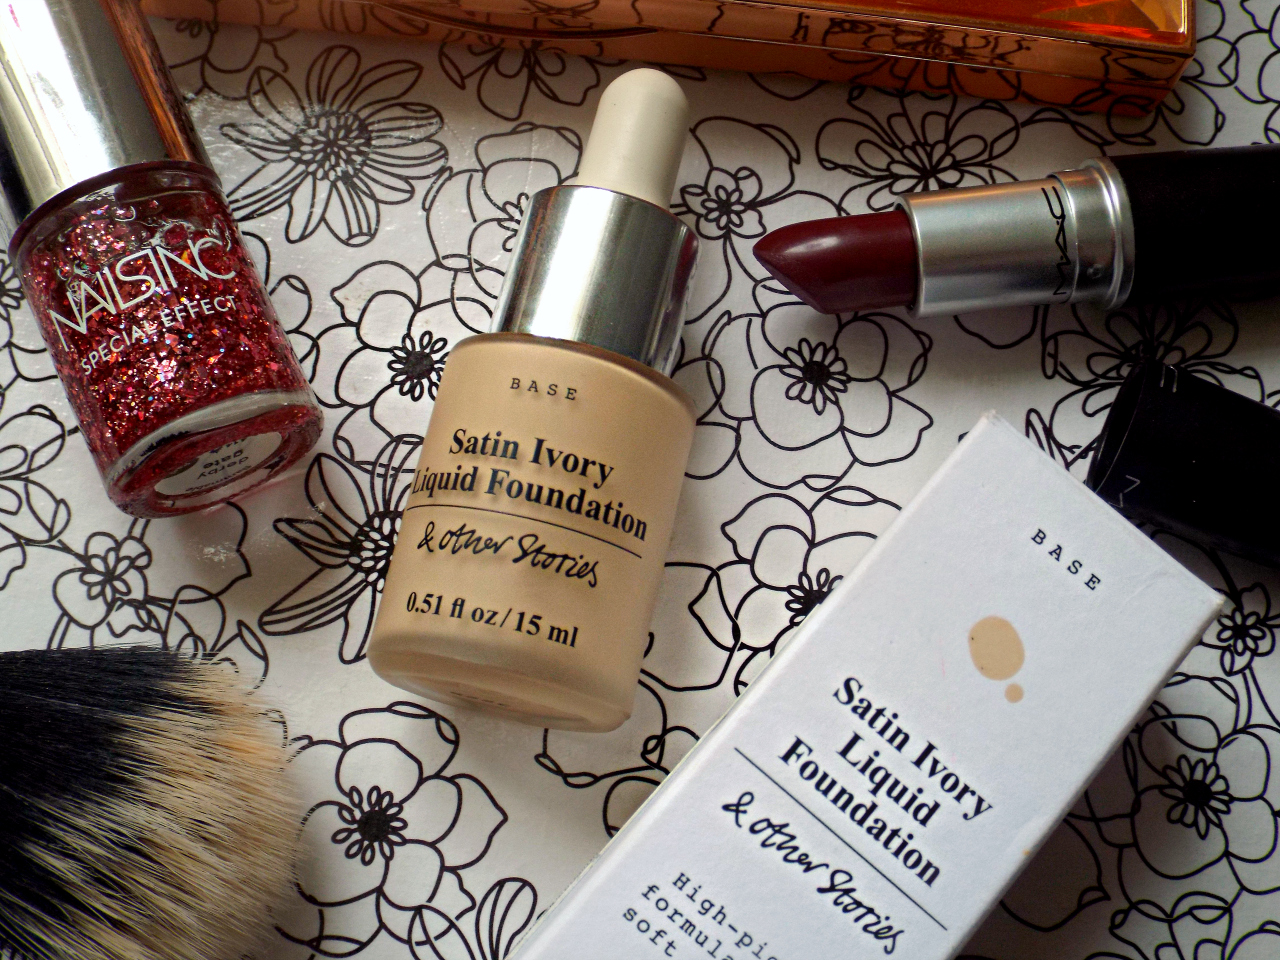 & Other Stories Satin Ivory Liquid Foundation